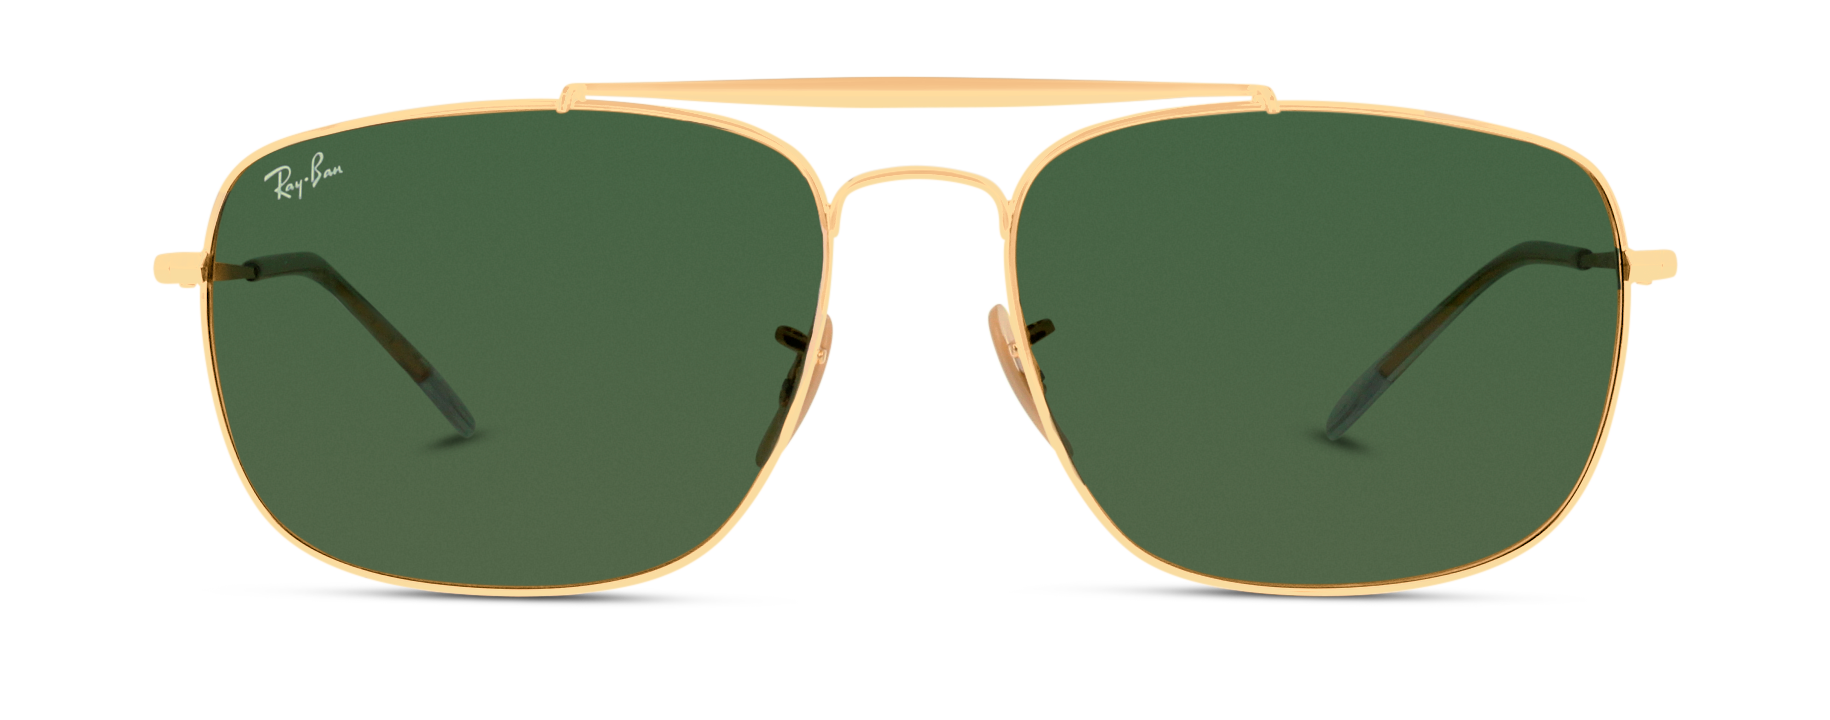 Front Ray-Ban Ray-Ban 0RB3560 001 61/17 Goud/Groen